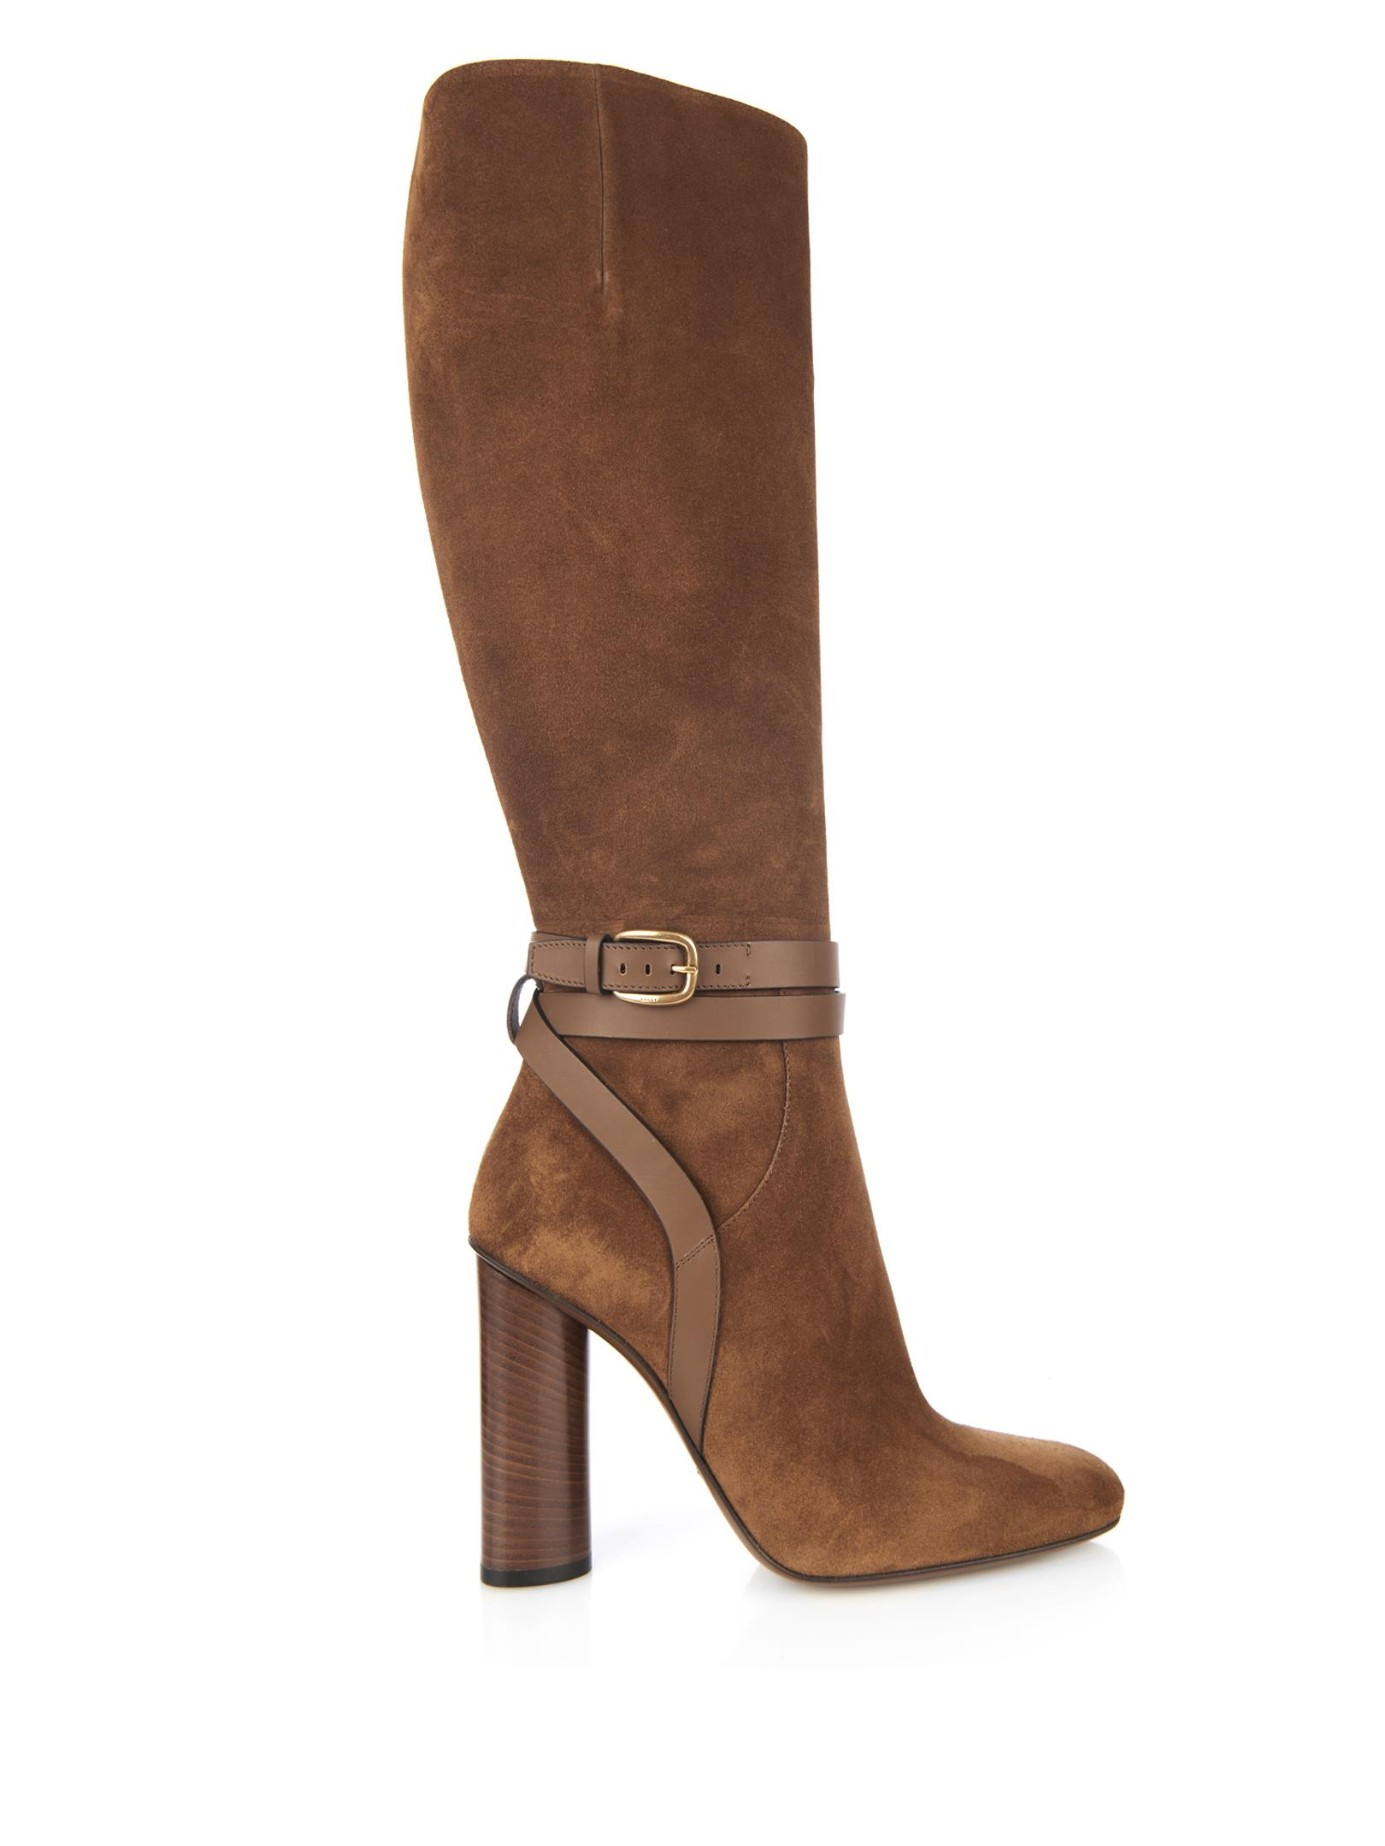 Gucci Suede Knee-High Boots in Brown | Lyst